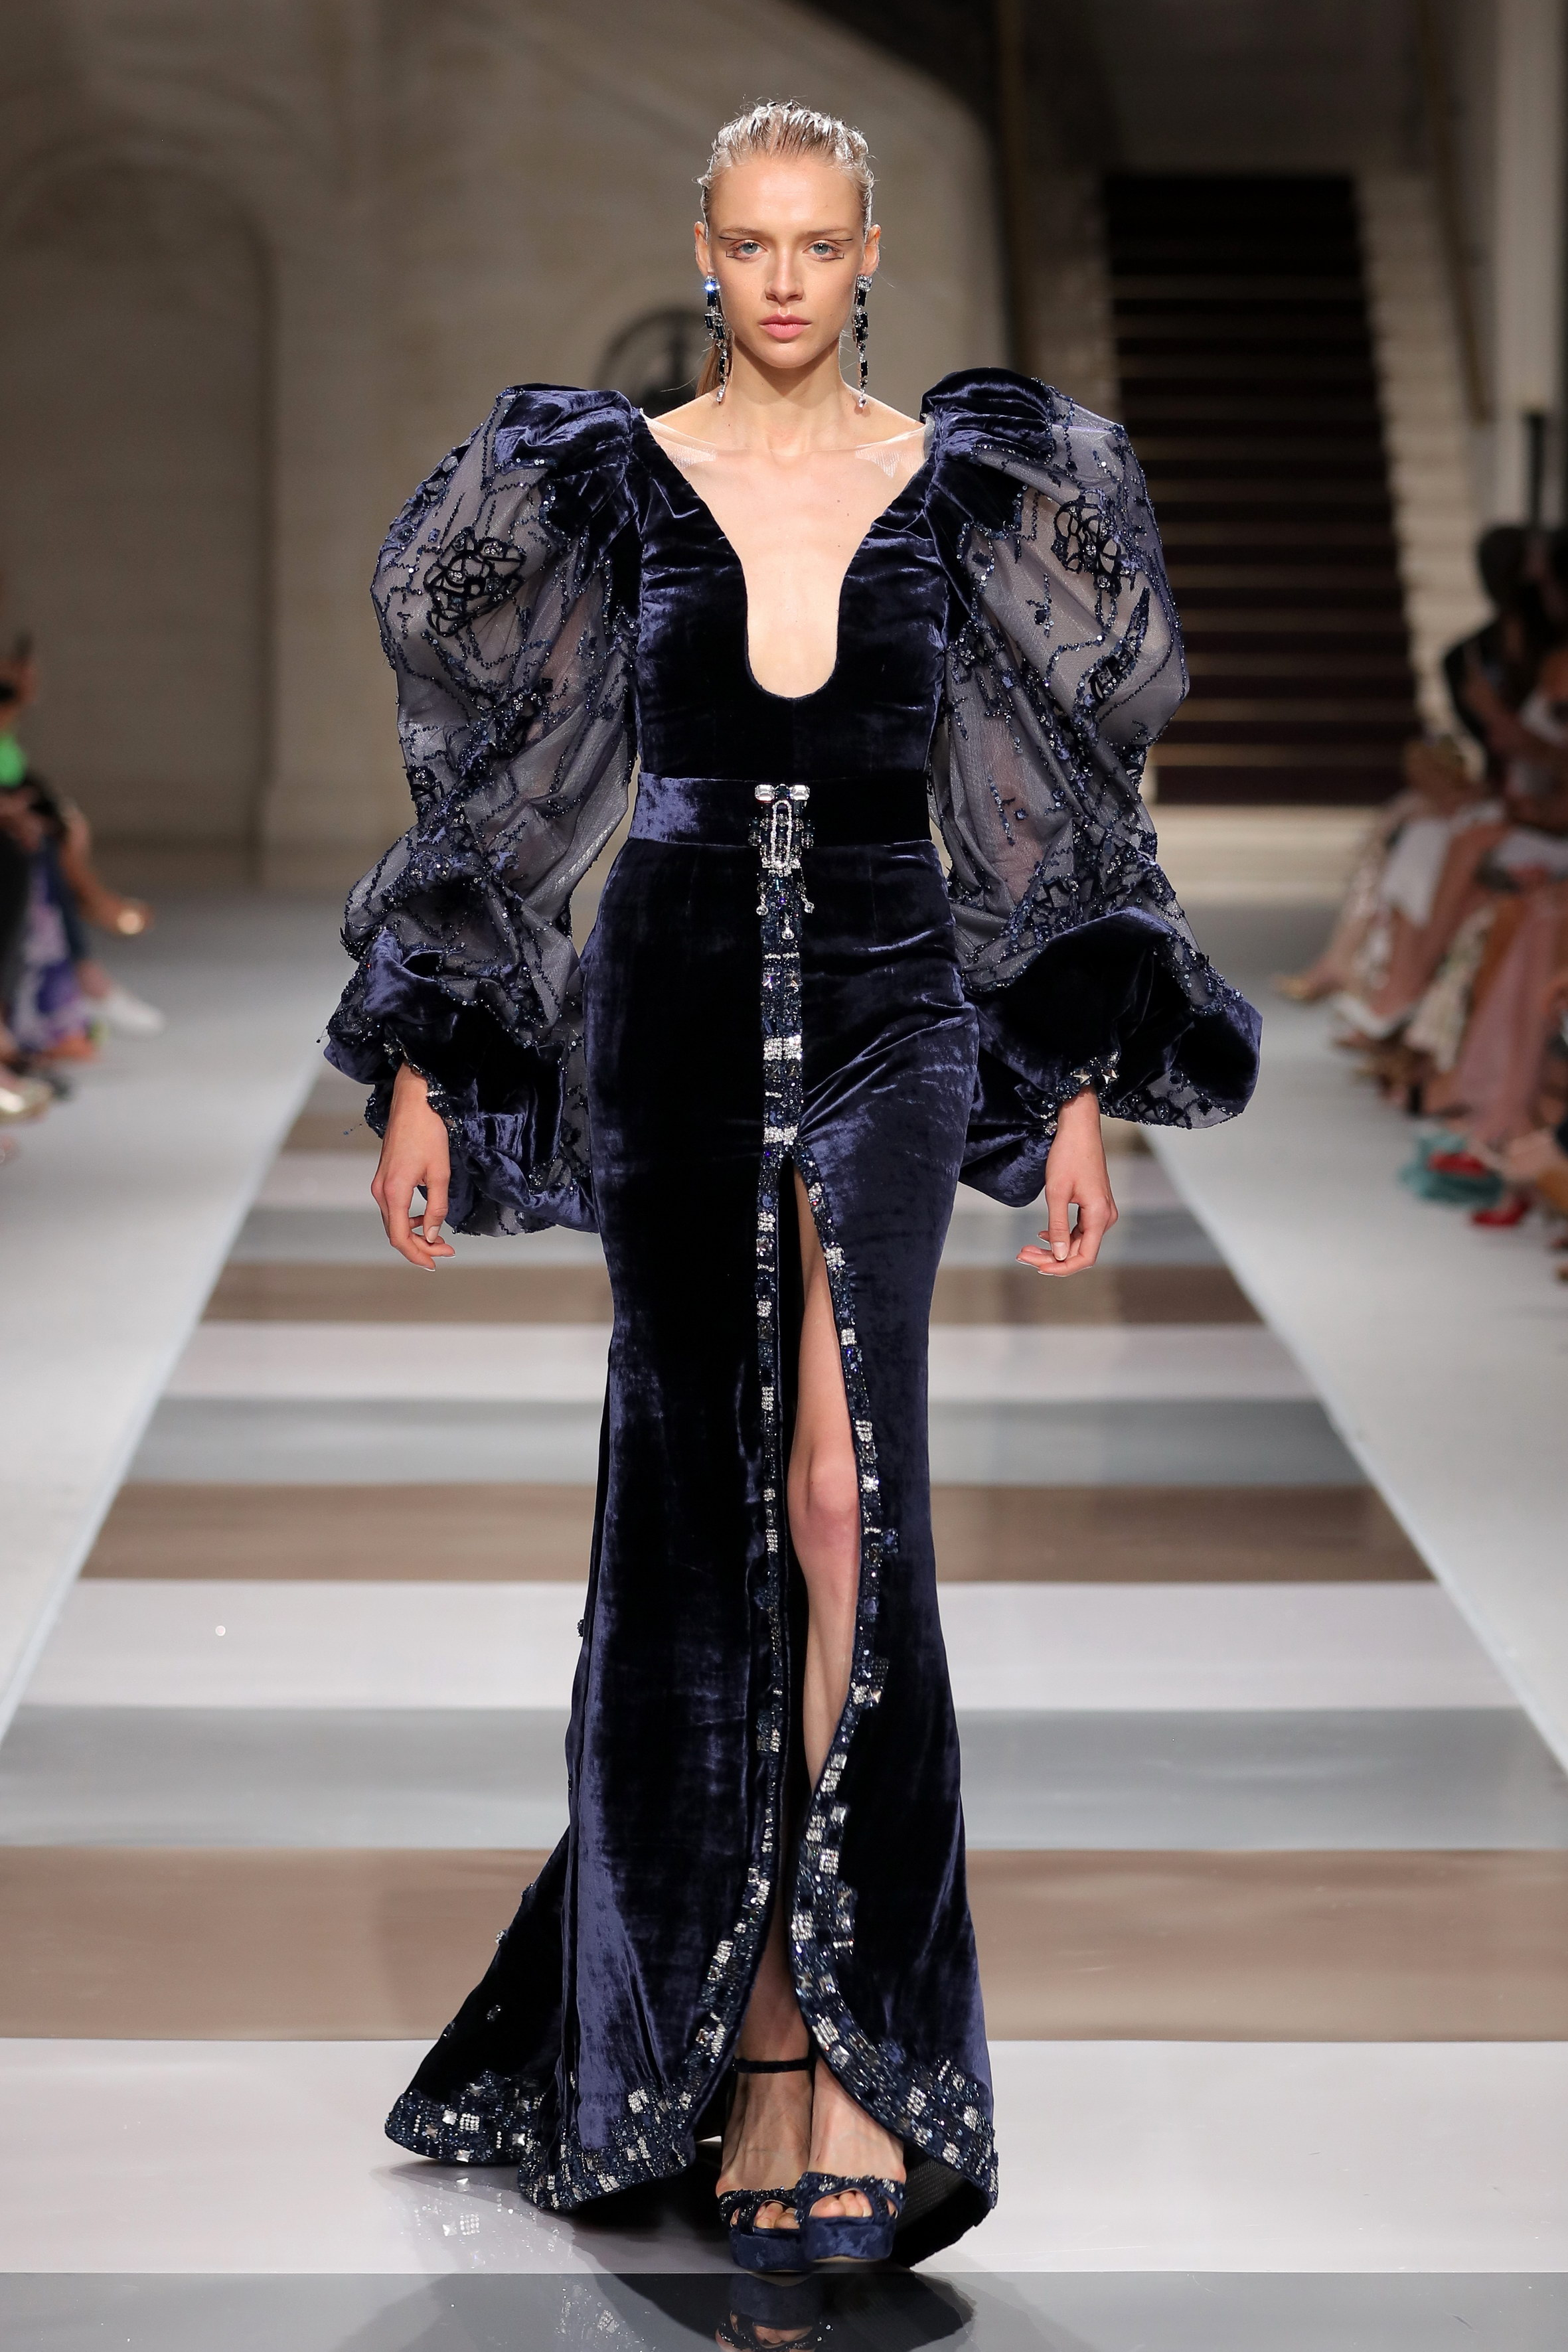 ZIAD NAKAD FW 20 COUTURE